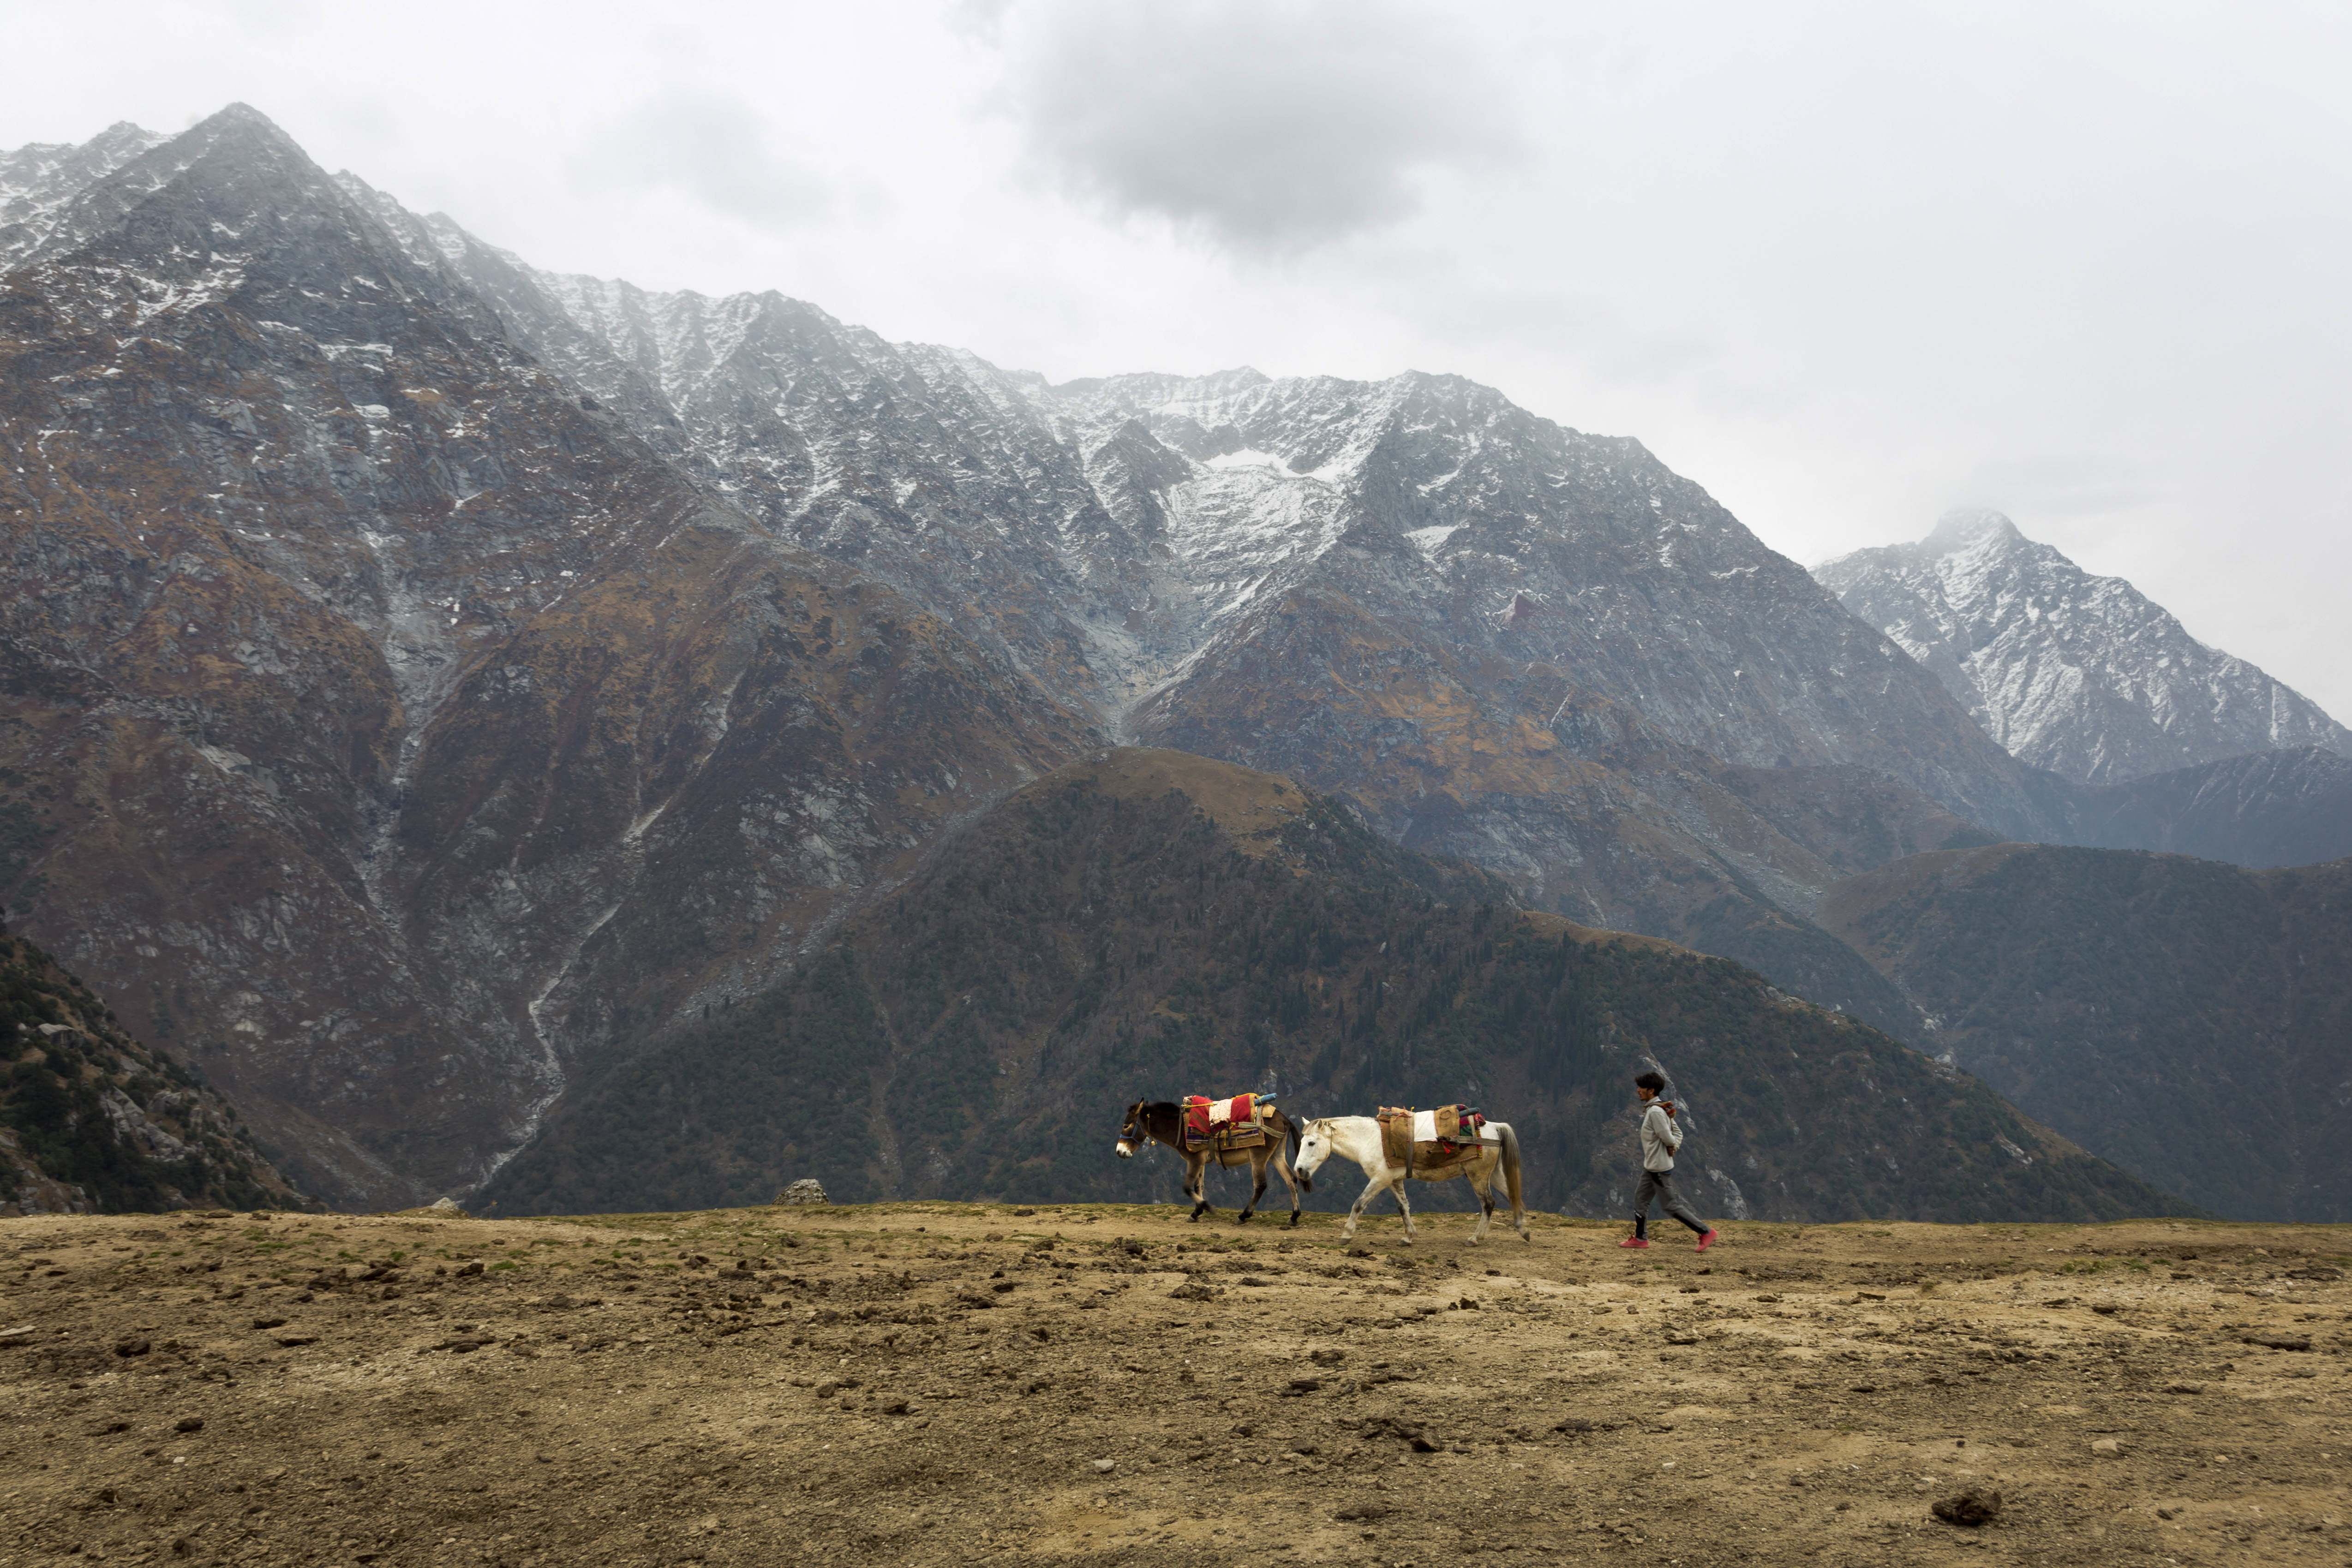 A local man drives his mules against the backdrop of the Dhauladhar range at Triund, a popular hiking destination in Dharmsala - AP